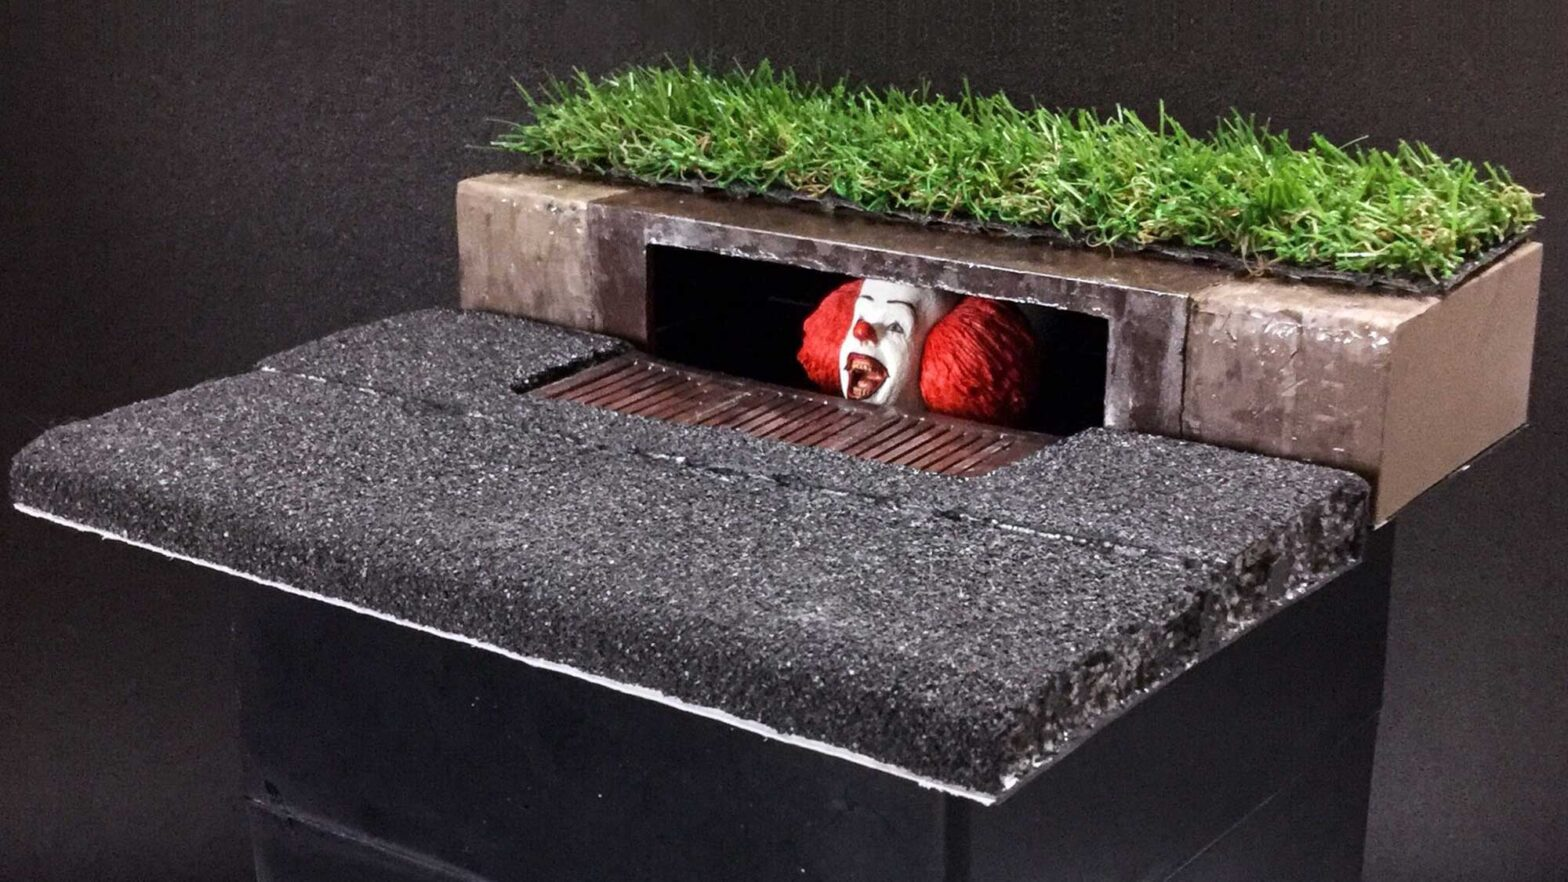 DIY Pennywise Sewer-lurking Scene